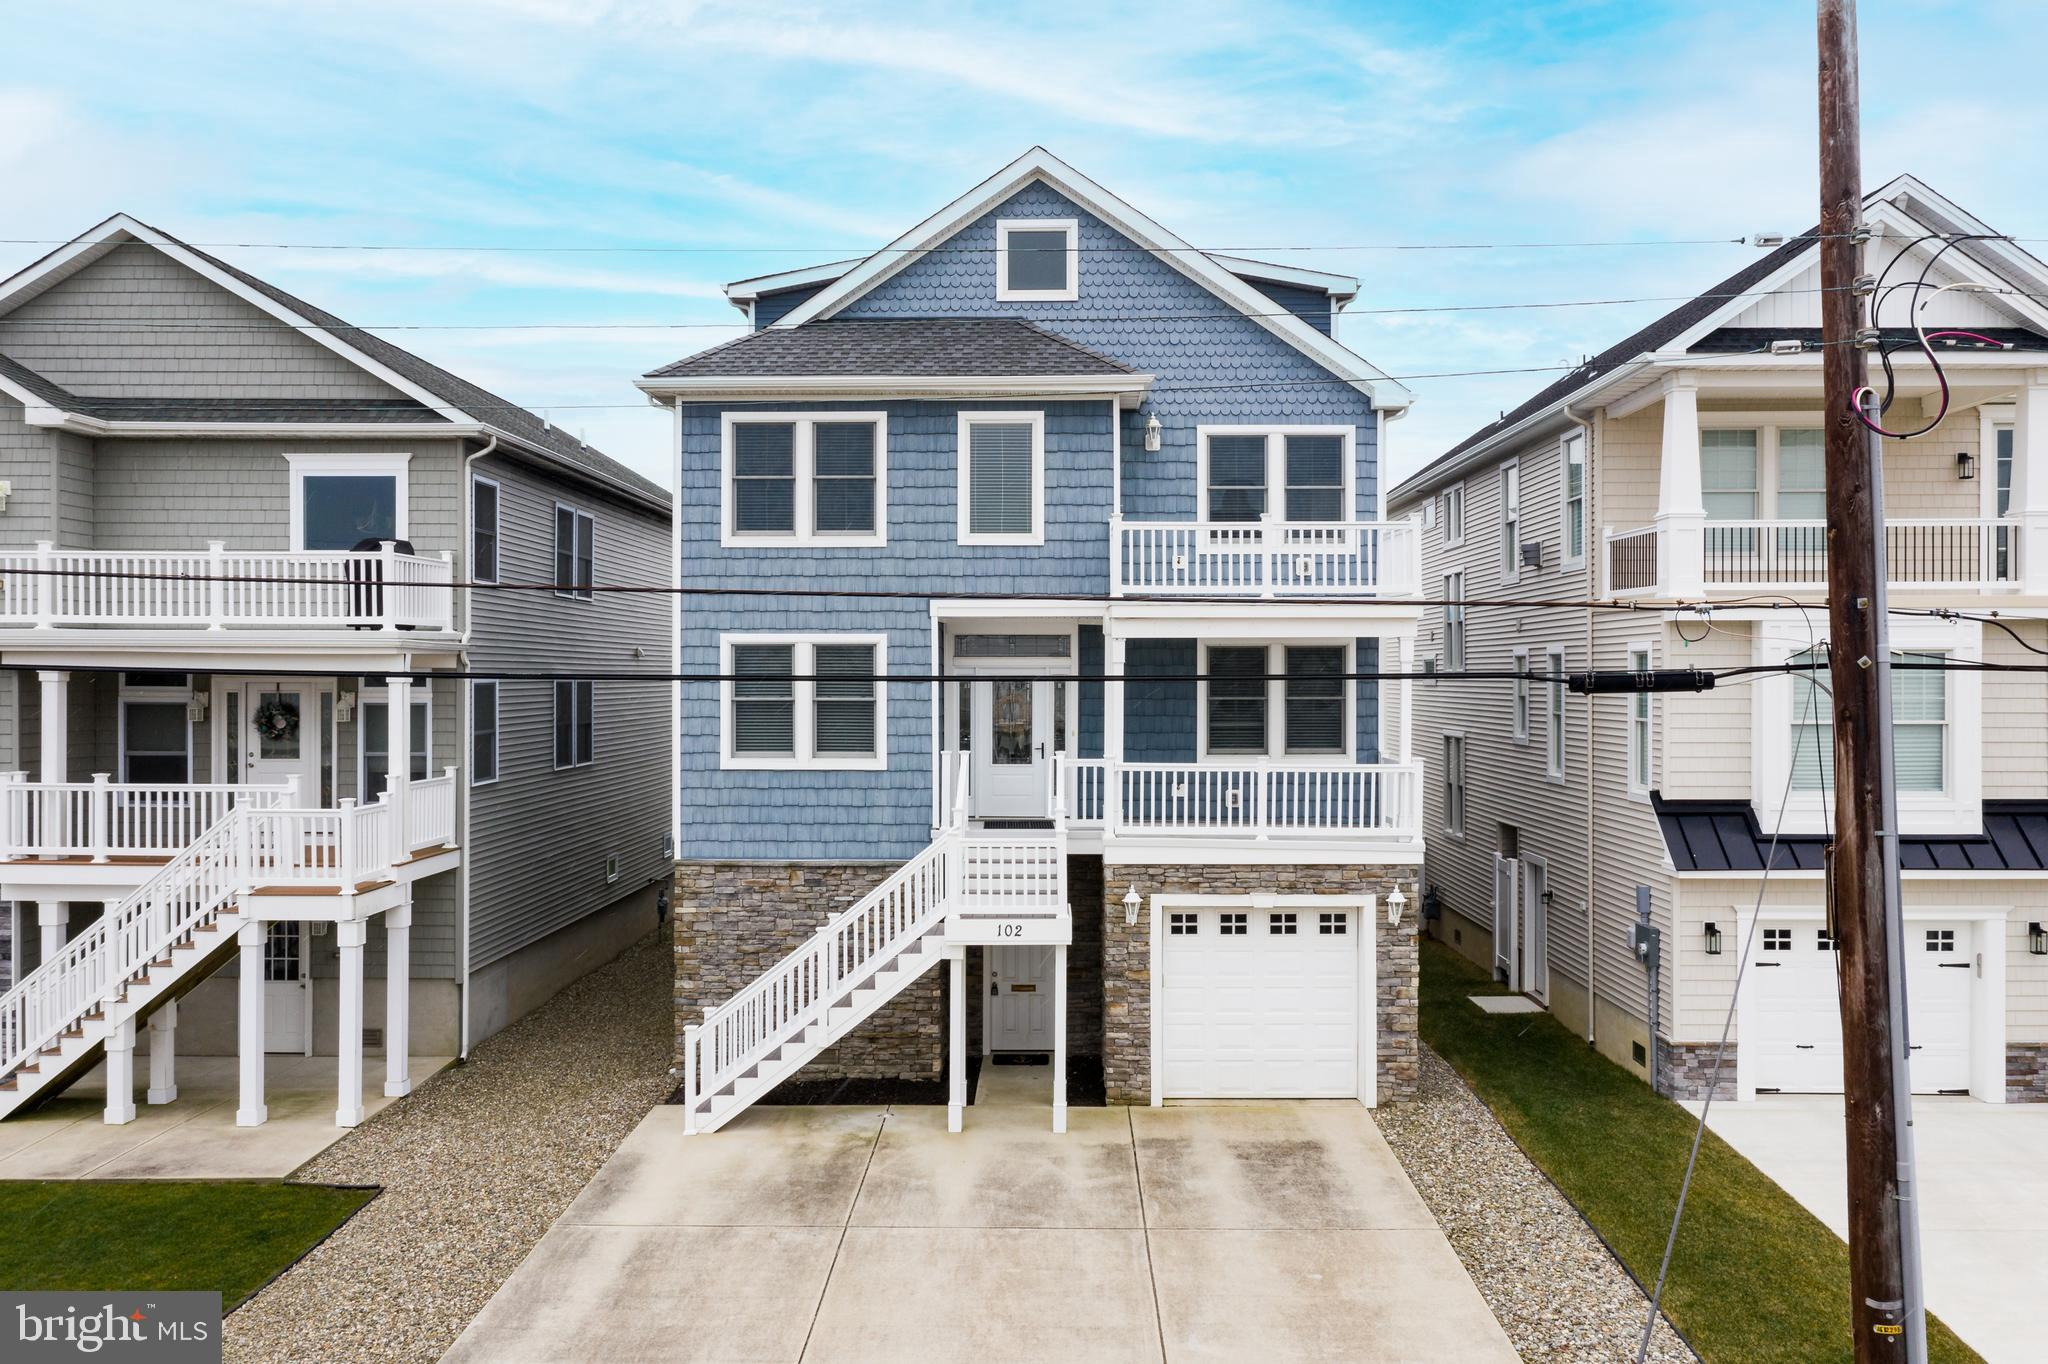 Now is the perfect time to take that next step you've been dreaming of. The time is perfect for you to purchase your shore home in the great town of Brigantine. This beauty offers views of the ocean and the bay and has more space than you can imagine. It is designed with the vacation fun and entertaining lifestyle in mind. You'll love the street presence with the blue maintenance free shingle, siding and stone facade, multiple levels of decks on the front and rear, off street parking in the cement driveway and a one car garage. There's even a grassy backyard for the family and pets to play. The raised design of the floor plan creates a street level space next to the garage that is great for storage or ready to be finished off into game & entertainment space if you choose. The home also has an elevator for convenience. Your main living areas have engineered hardwood t/o, loads of bright sunny windows, a Great Room, Dining Room area, gourmet Kitchen with sophisticated styling, 6burner gas cooktop w/ hood, icemaker, double wall ovens; manufactured hardwood t/o, recessed lighting and all the furnishings are included in the sale. Two Bedrooms a full bath & half bath are located on the main level while the upper level is home to 4 Bedrooms and 2 additional bathrooms. Your upper, attic level is also ready to be finished into even more living space and it's ready to go. You'll even find a supply of matching hardwood flooring is ready and waiting for you.  Home has walkability to the ocean and the bay restaurants, shopping and all the fun activities that the shore provides.  Now is a great time to take the leap, rates are cheap and this home is perfect!